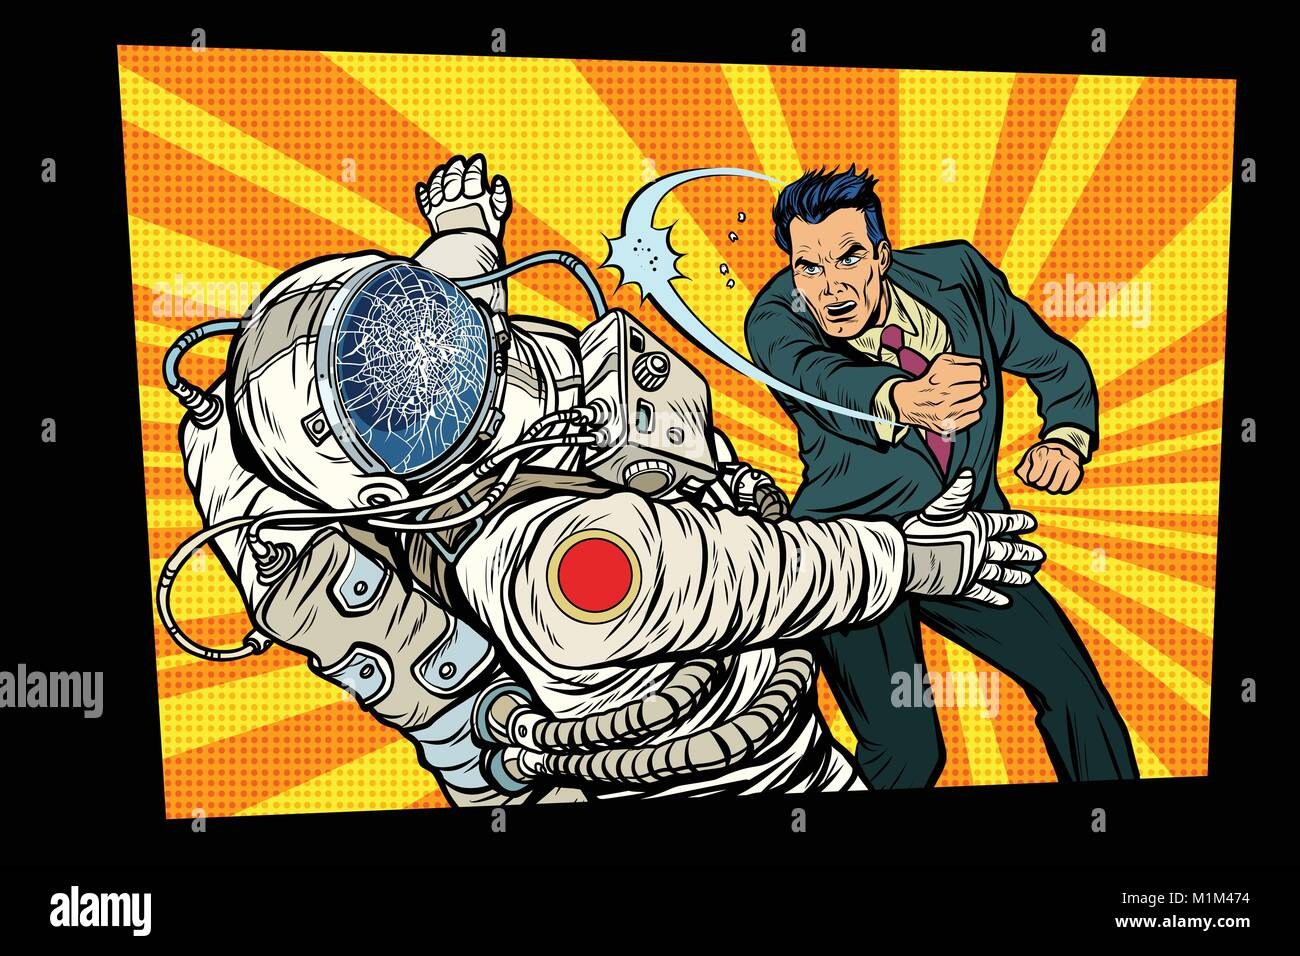 man vs astronaut, fight - Stock Vector